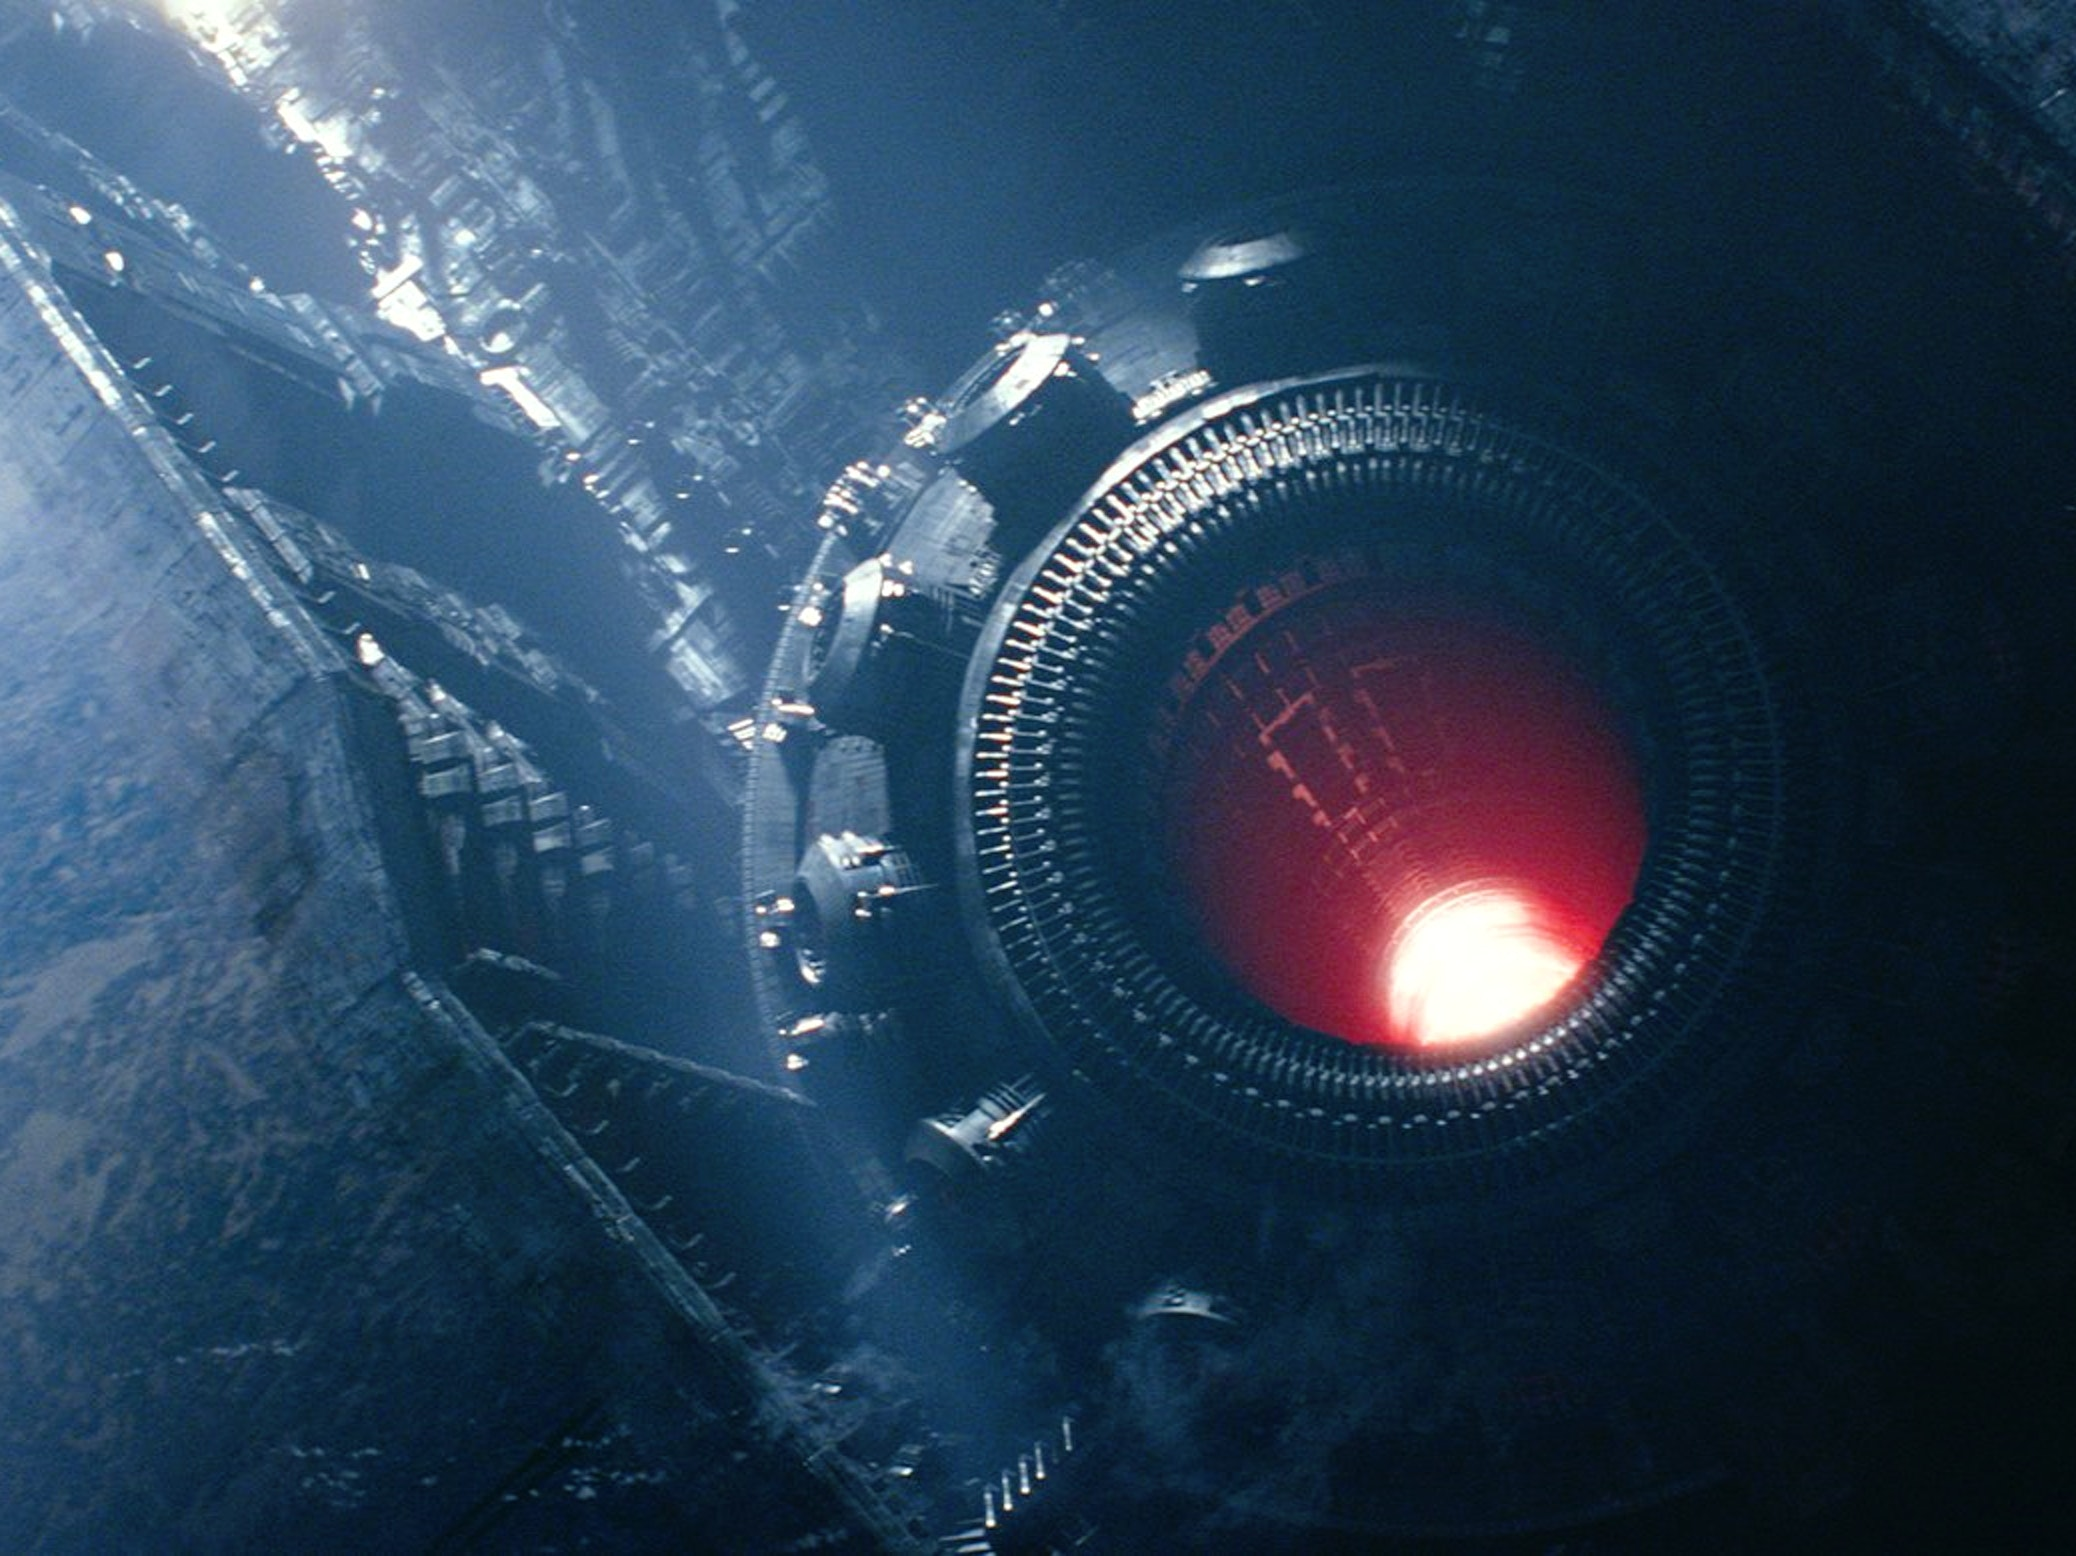 Could Starkiller Base Have Messed Up the Star Wars Galaxy's Orbits?